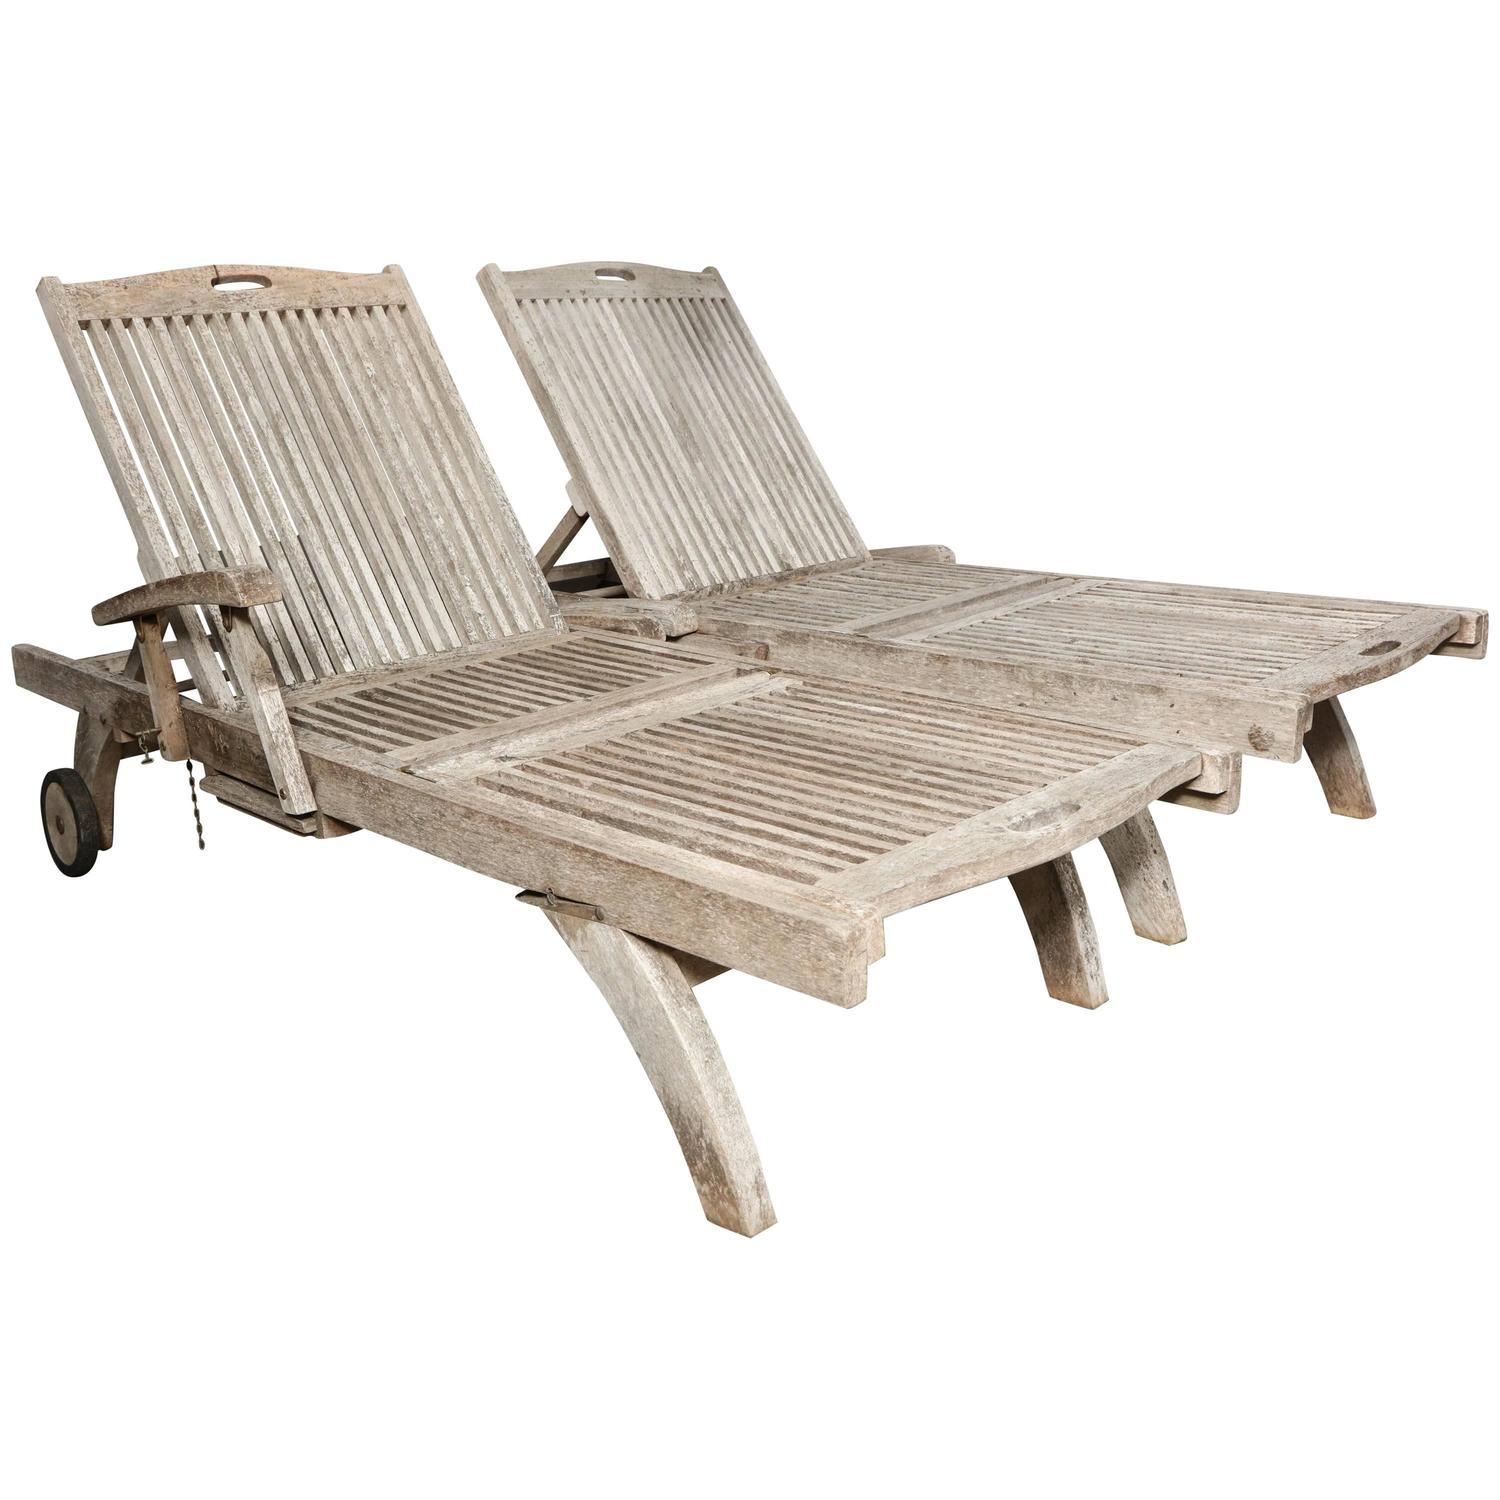 Teak outdoor lounge chaise at 1stdibs for Building a chaise lounge